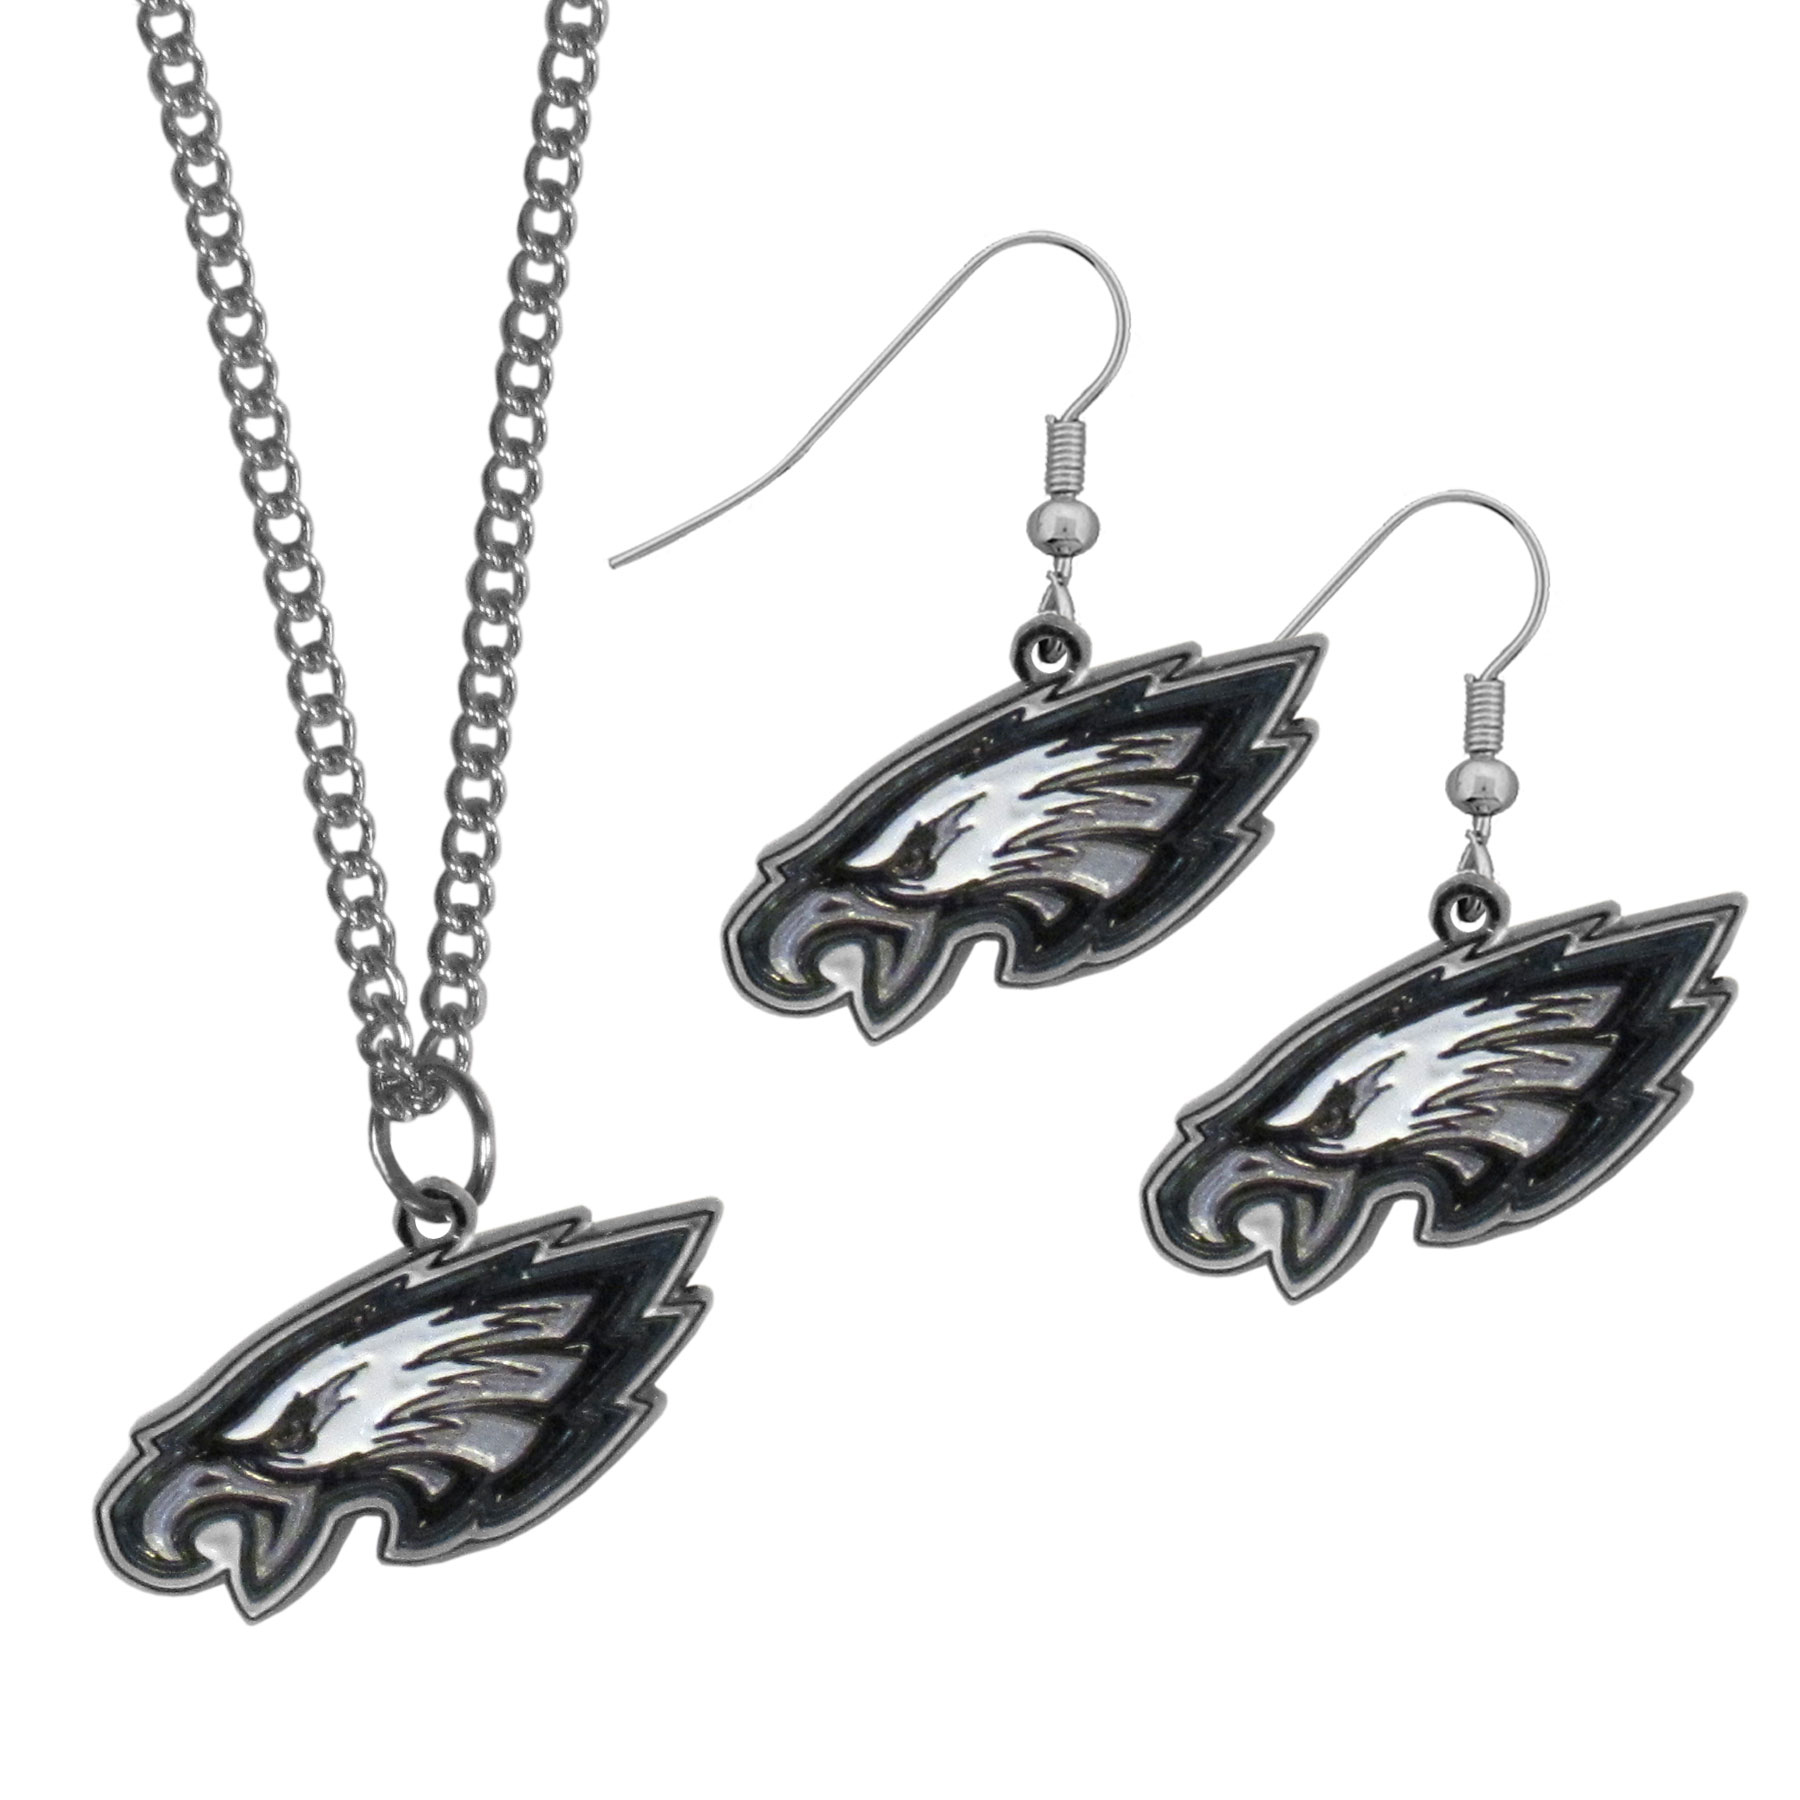 Philadelphia Eagles Dangle Earrings and Chain Necklace Set - This classic jewelry set contains are most popular Philadelphia Eagles dangle earrings and 22 inch chain necklace. The trendy, dangle earrings are lightweight and feature a fully cast metal team charm with enameled team colors. The matching necklace completes this fashion forward combo and is a spirited set that is perfect for game day but nice enough for everyday.